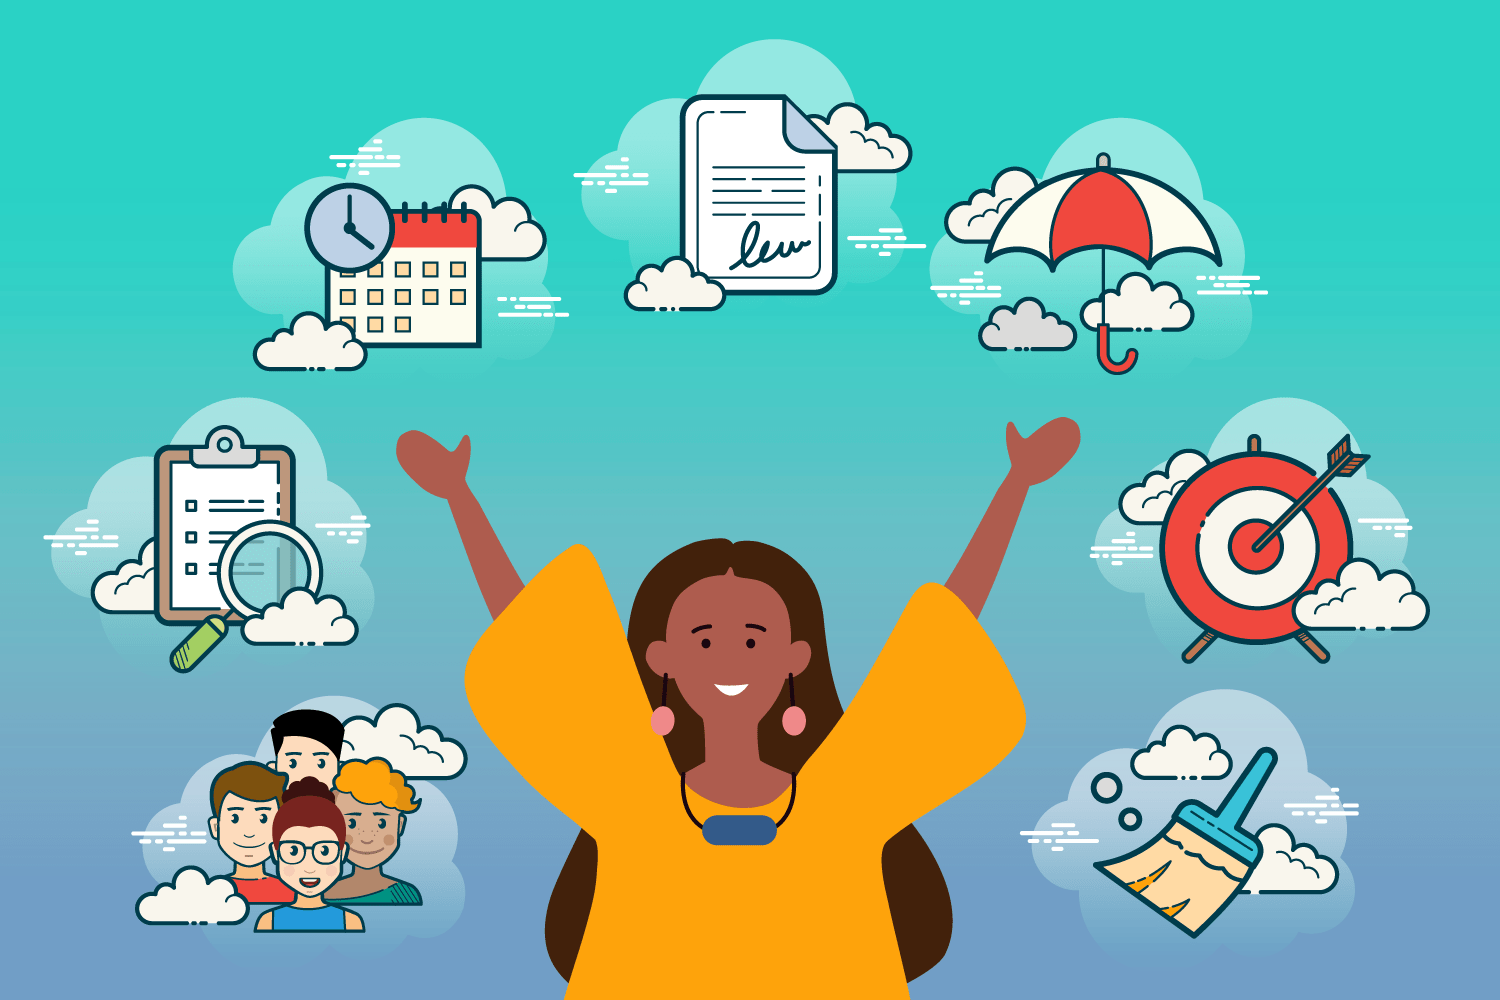 7 Tips for Getting Prepped and Pumped for Your HCM Implementation